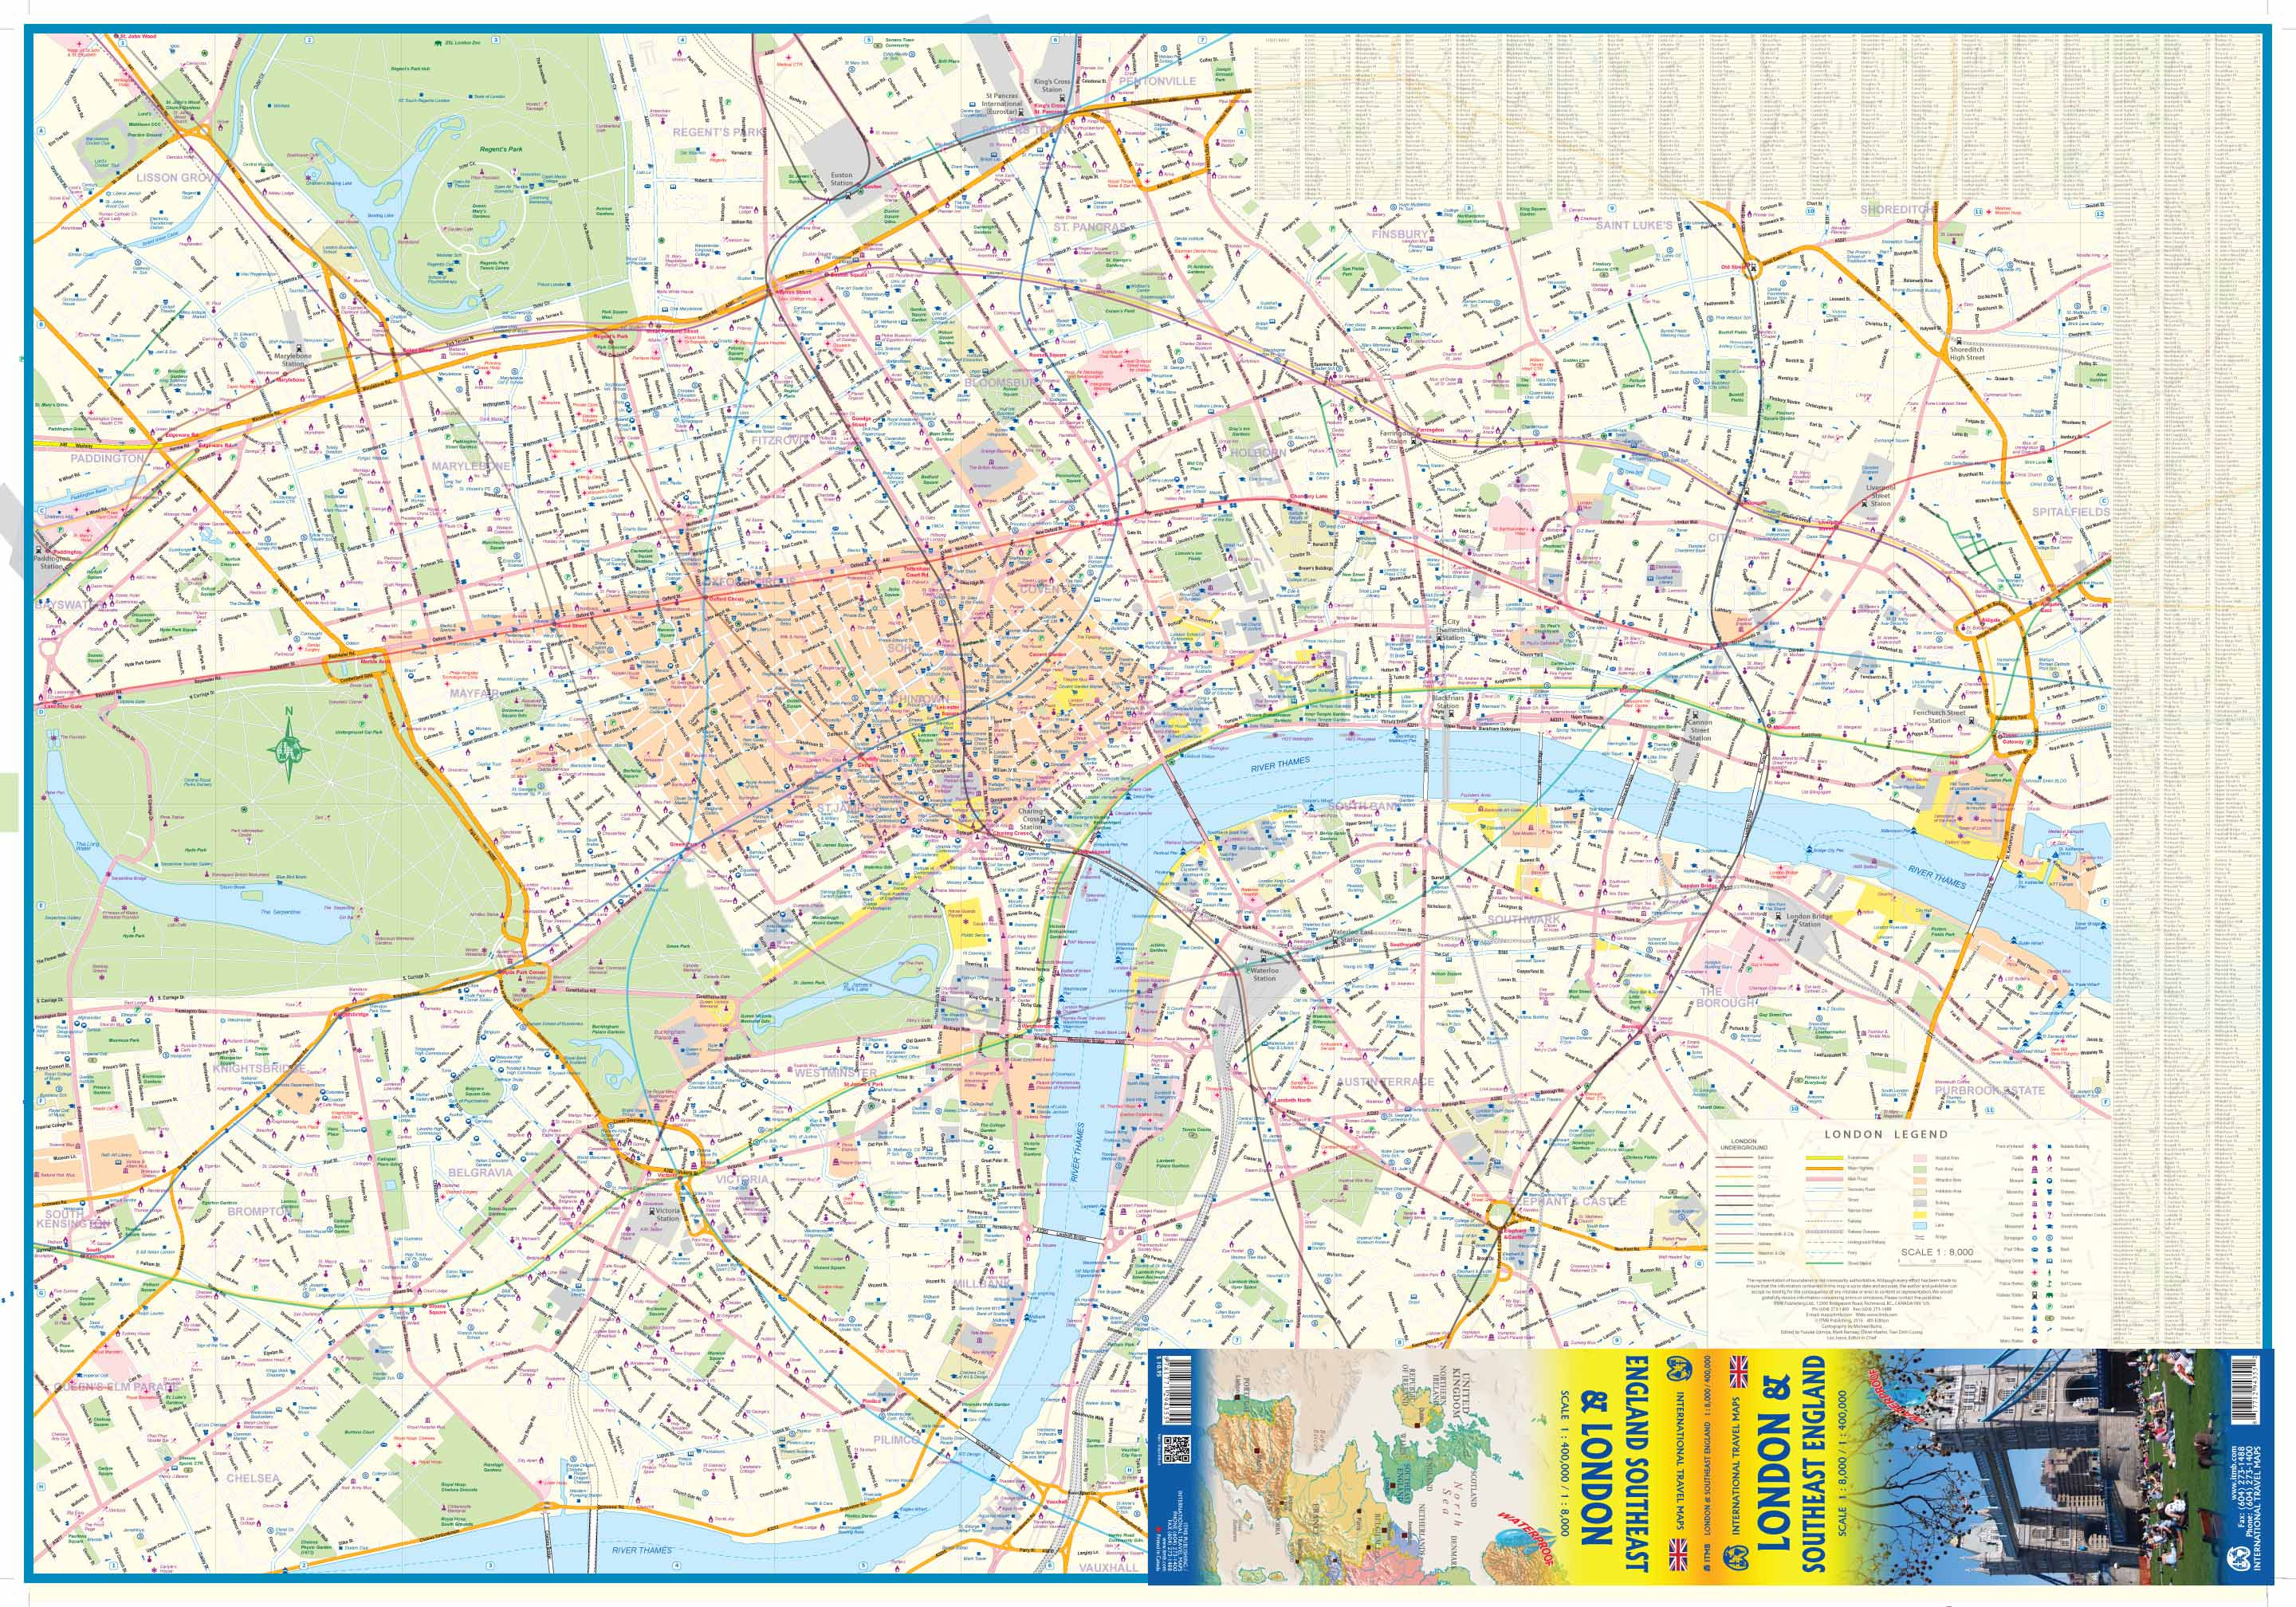 Map Of London England And Surrounding Area.Maps For Travel City Maps Road Maps Guides Globes Topographic Maps